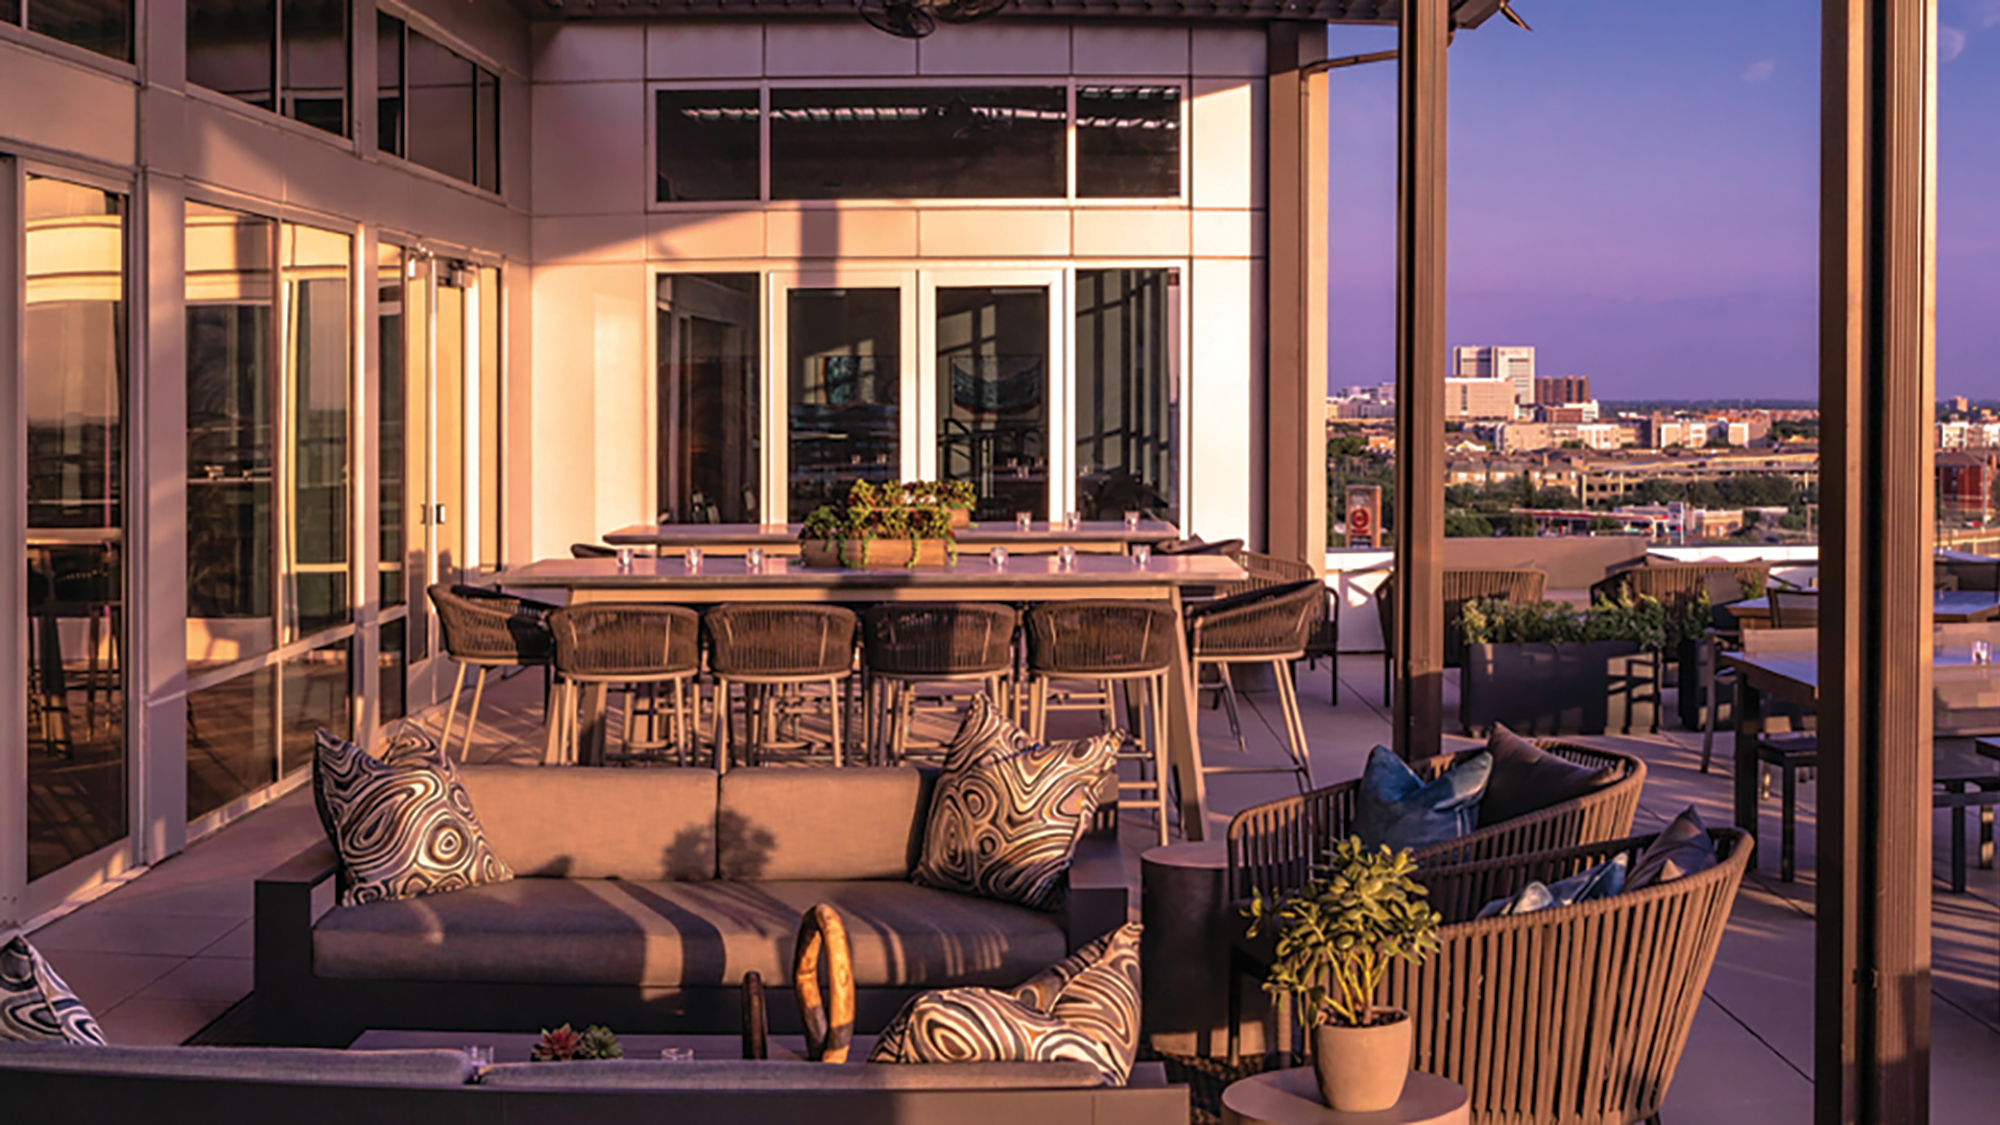 Late to the lifestyle party, Canopy by Hilton picks up steam